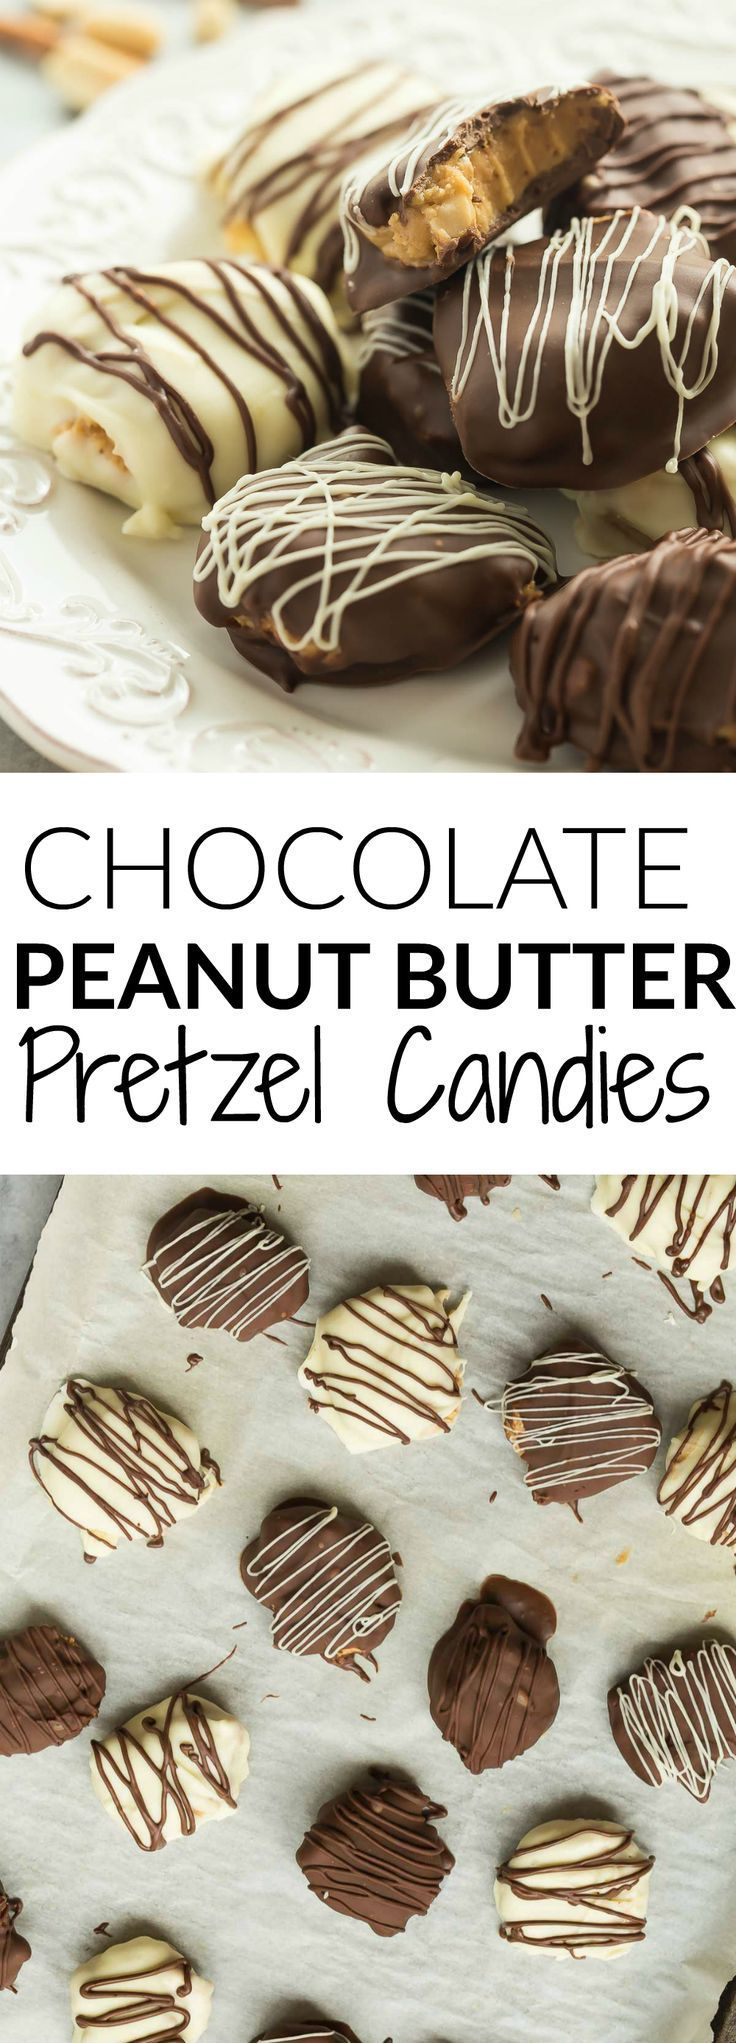 These Chocolate Peanut Butter Pretzel Candies are an easy, no bake treat for the holidays (or any day!)! A crisp chocolate coating is filled with creamy peanut butter filling, chopped salted peanuts and pretzels for the ultimate sweet and salty dessert!